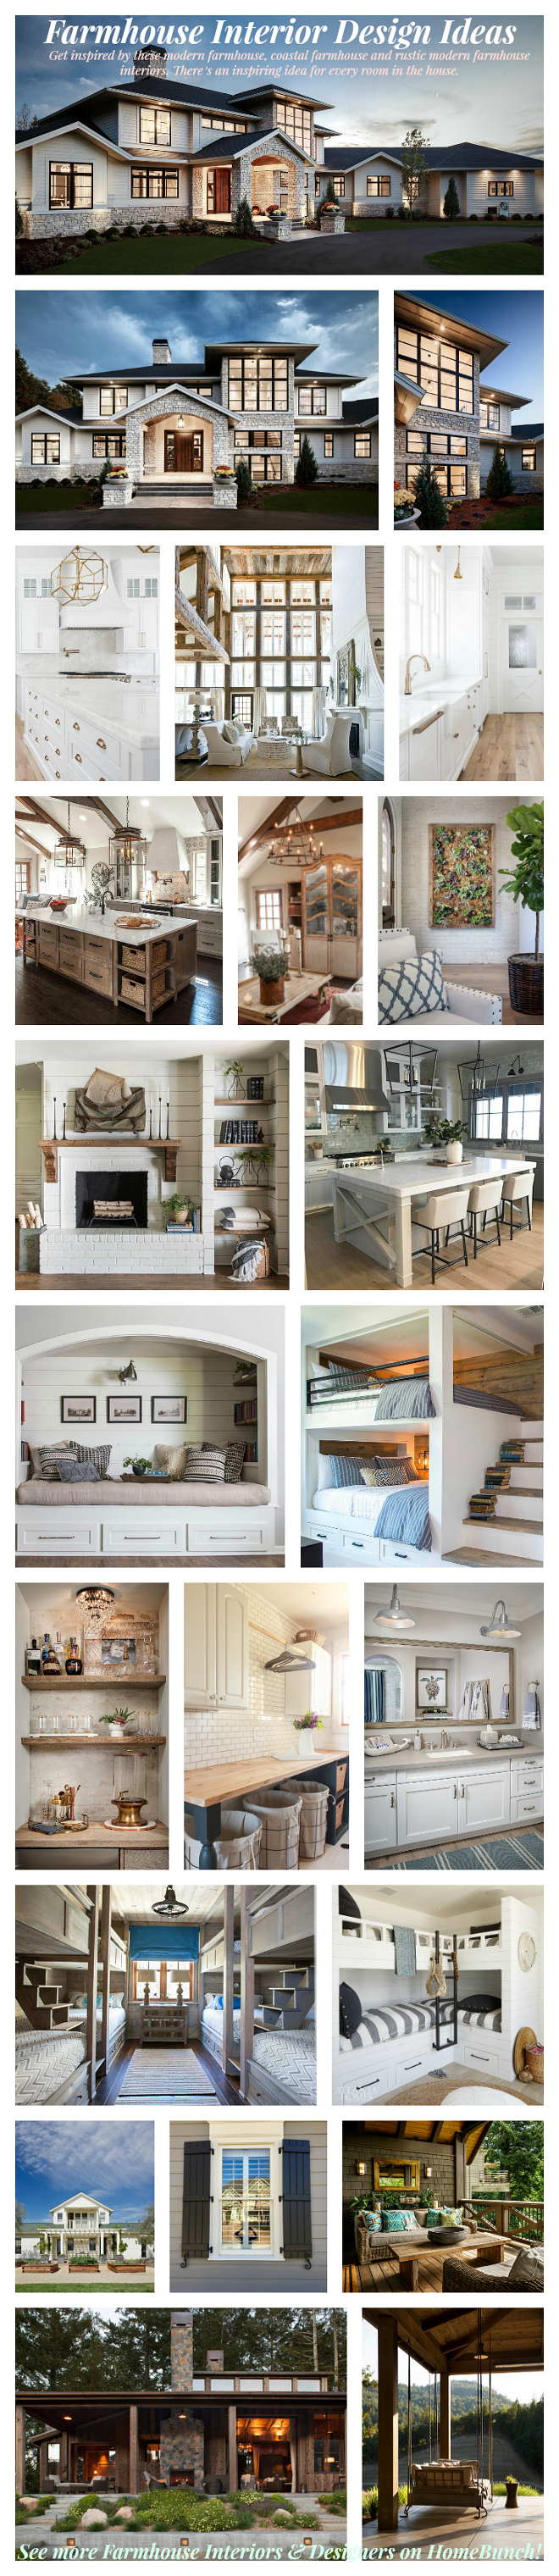 Beautiful Post Featuring A Collection Of Farmhouse Interior Design Ideas